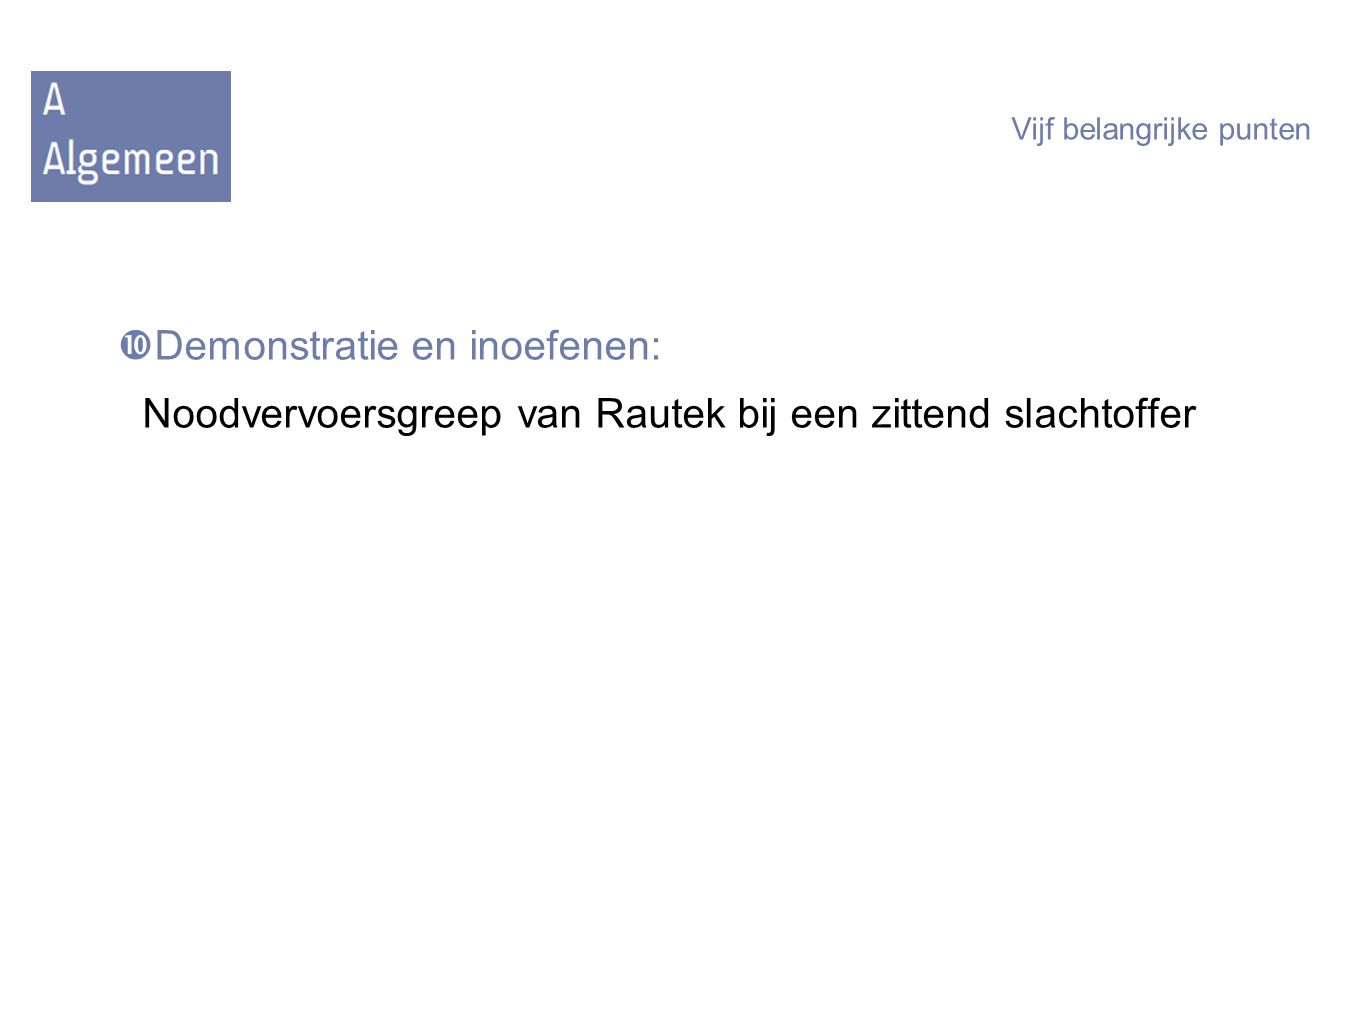 Demonstratie en inoefenen: